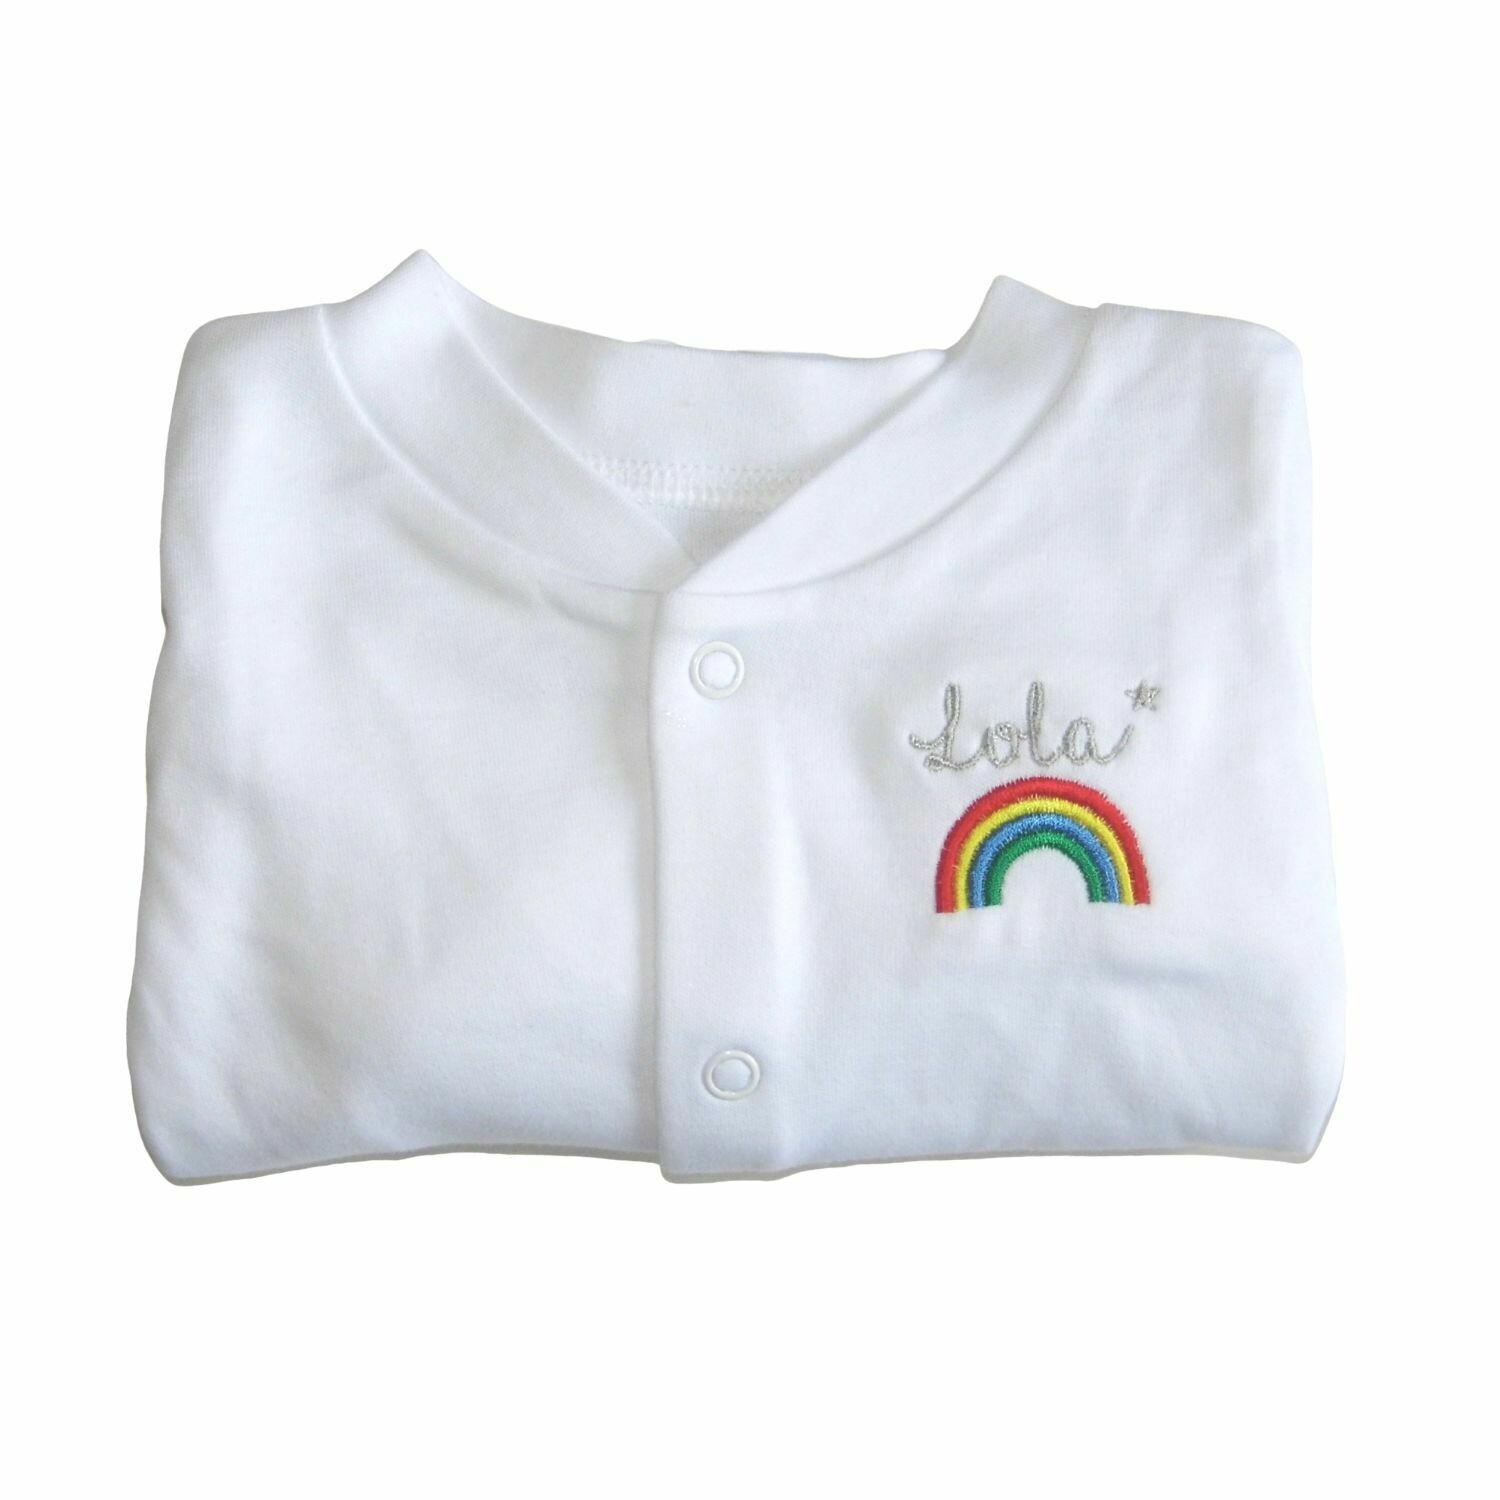 Personalised Rainbow Baby Sleepsuit with Embroidered Name